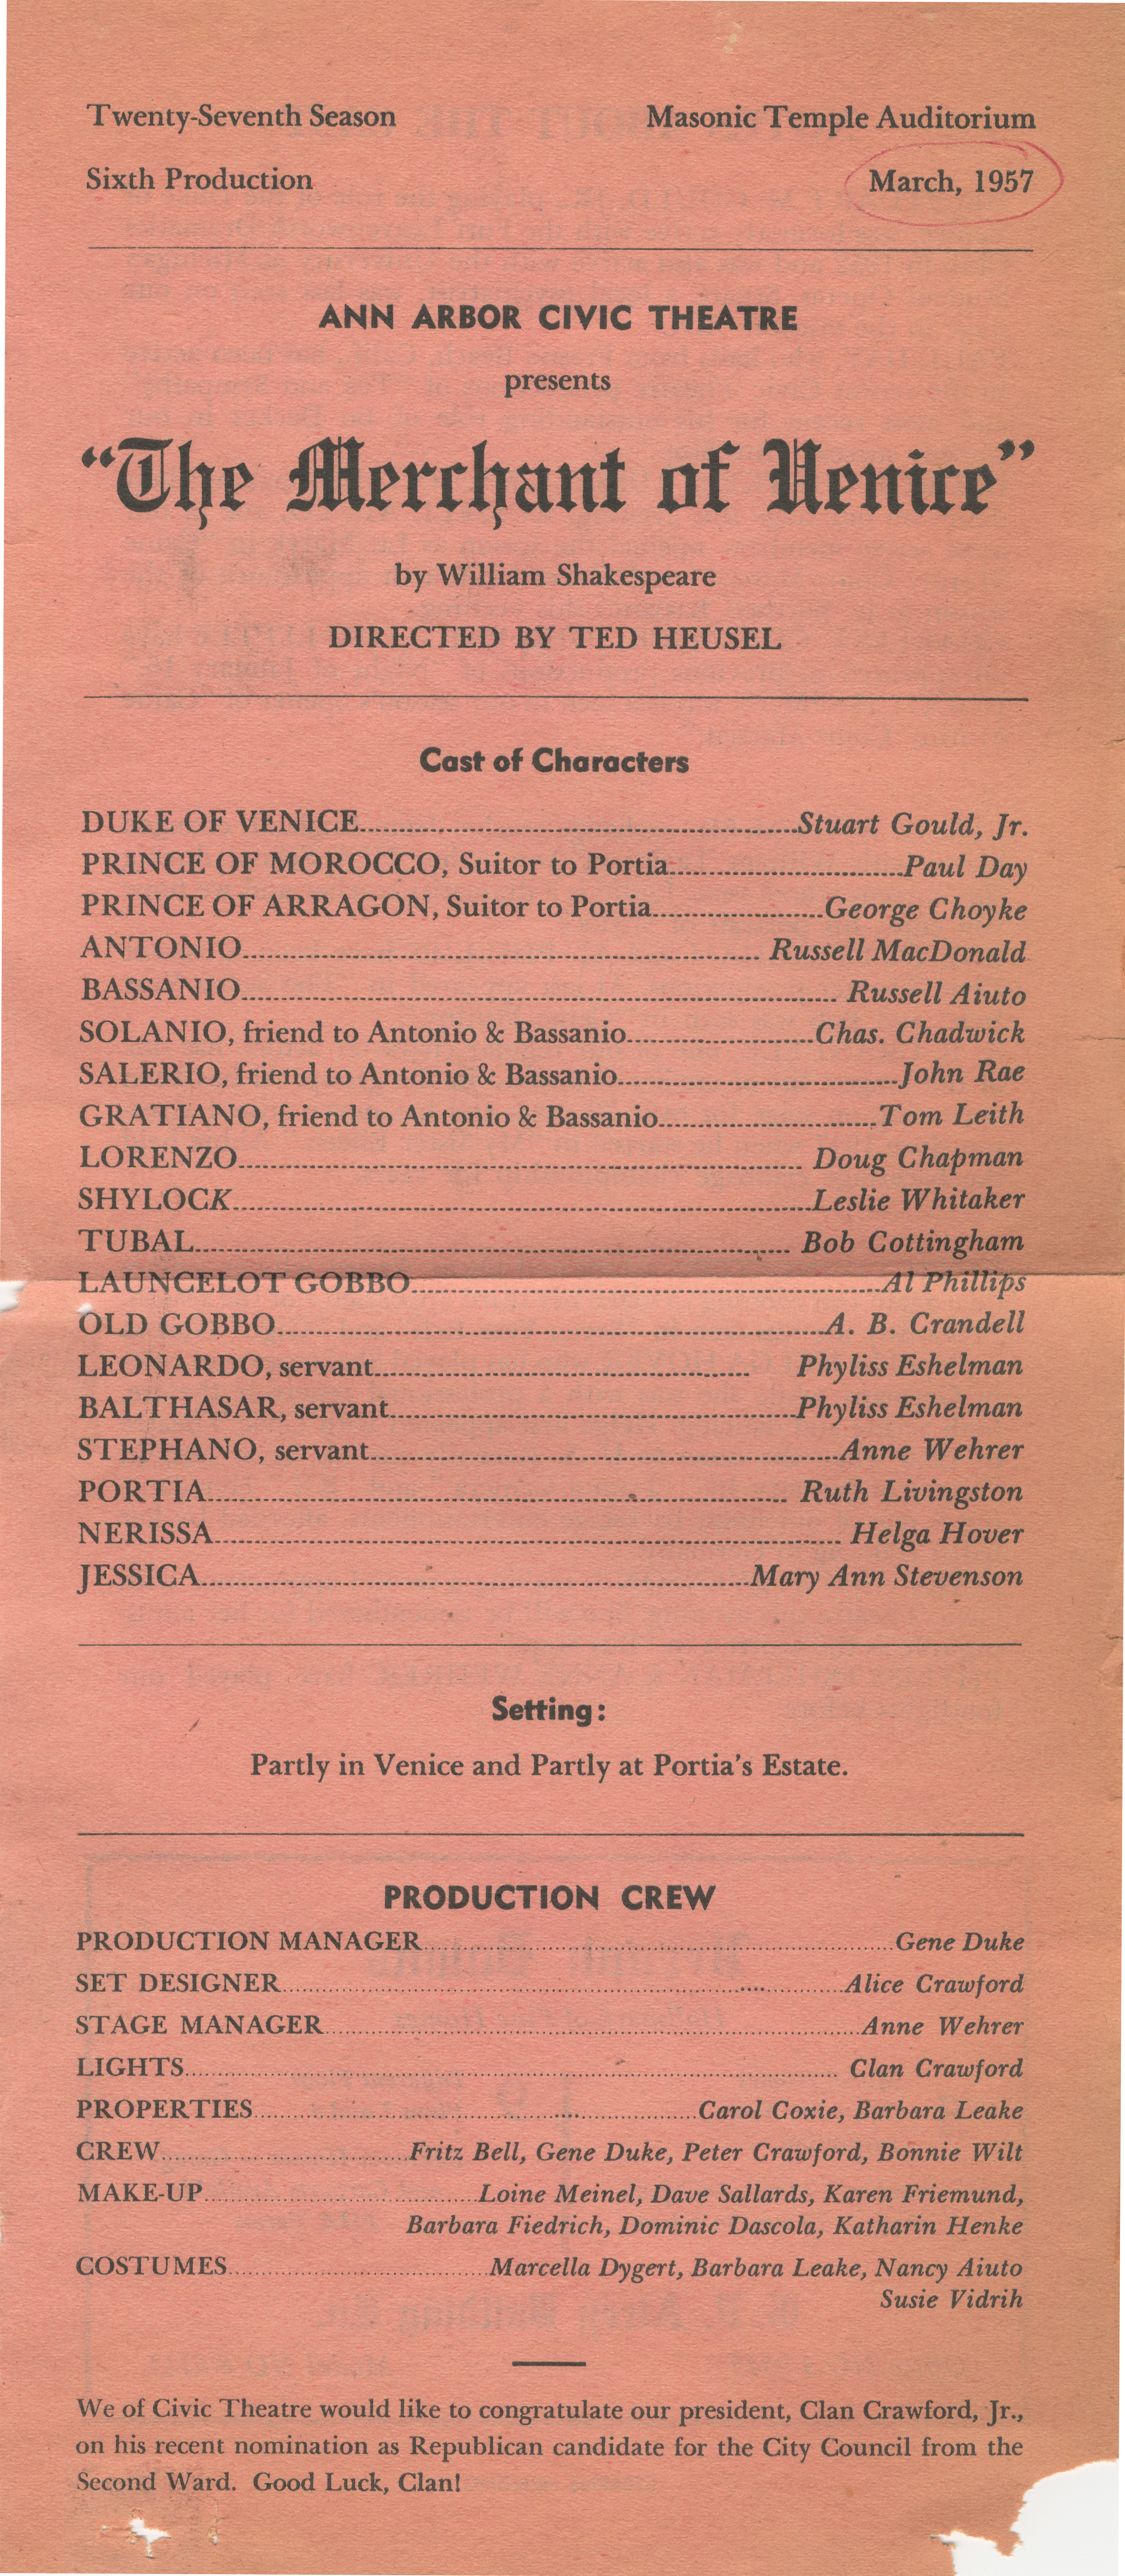 Ann Arbor Civic Theatre Program: The Merchant of Venice, March 28, 1957 image